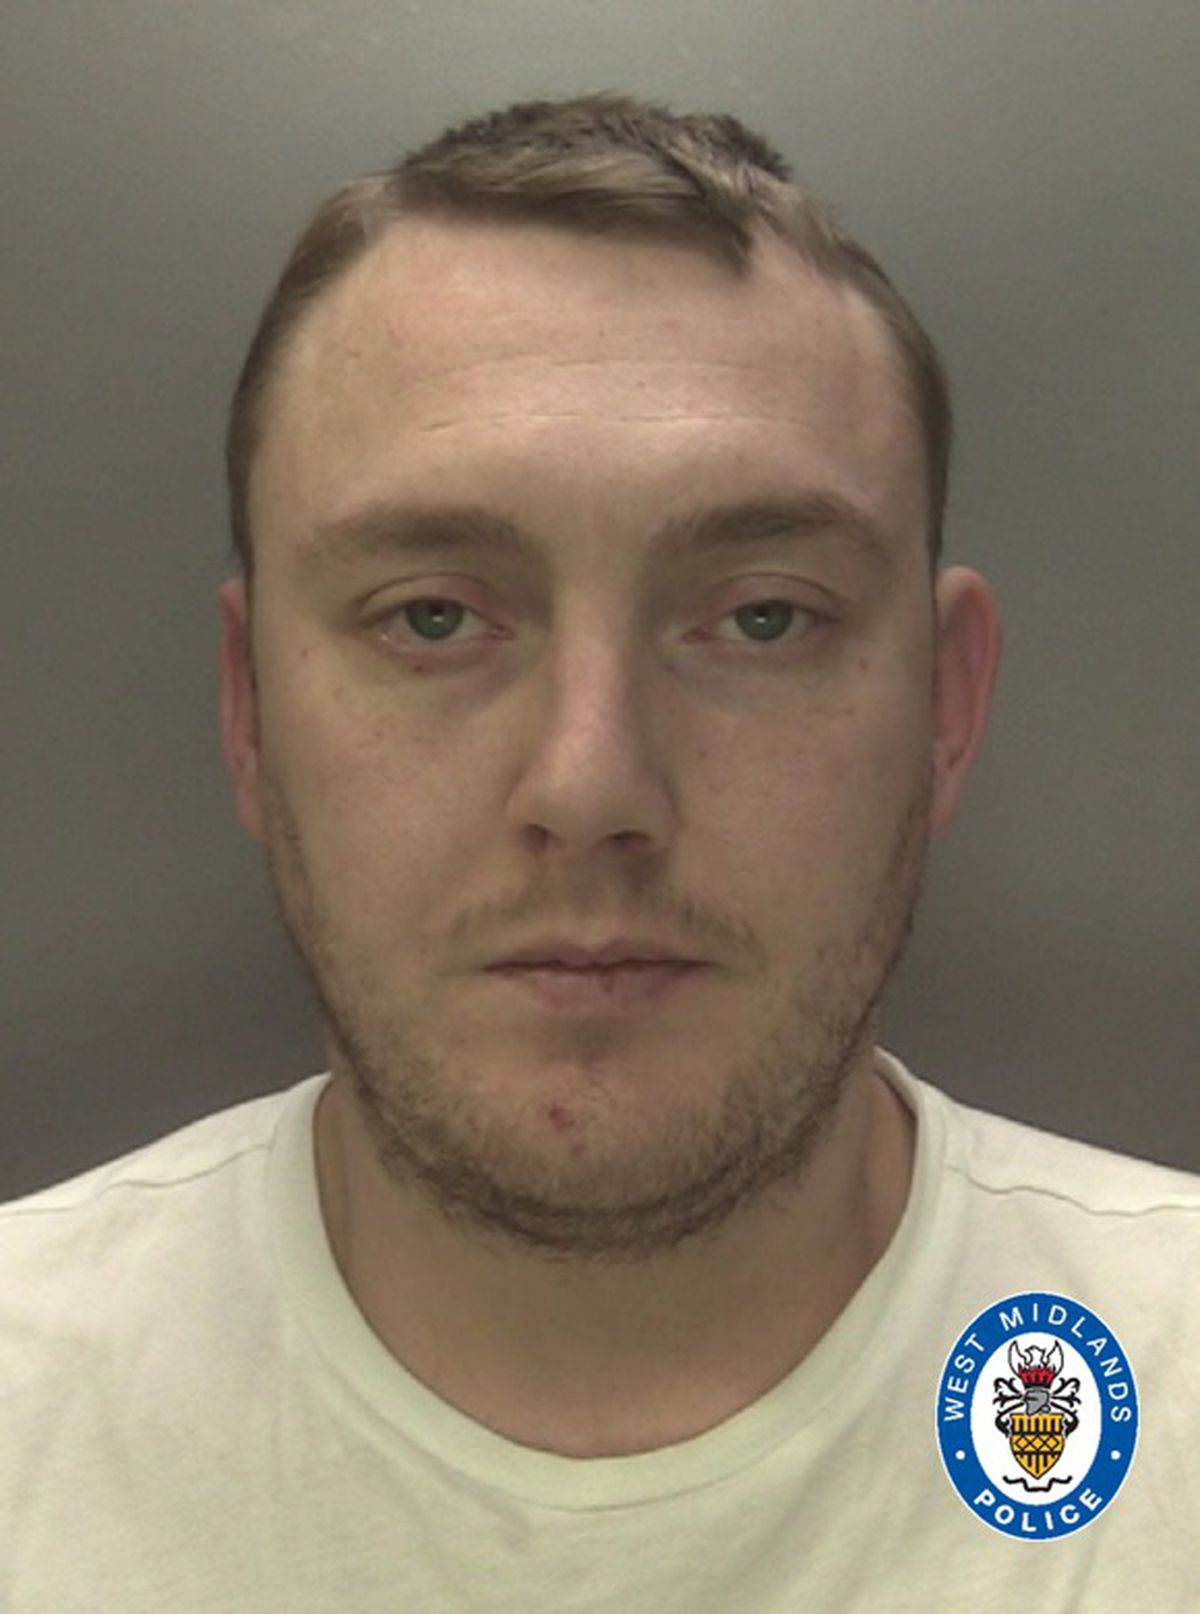 Karl Jarvis was seen brandishing a knife and threatening violence in the One Stop shop